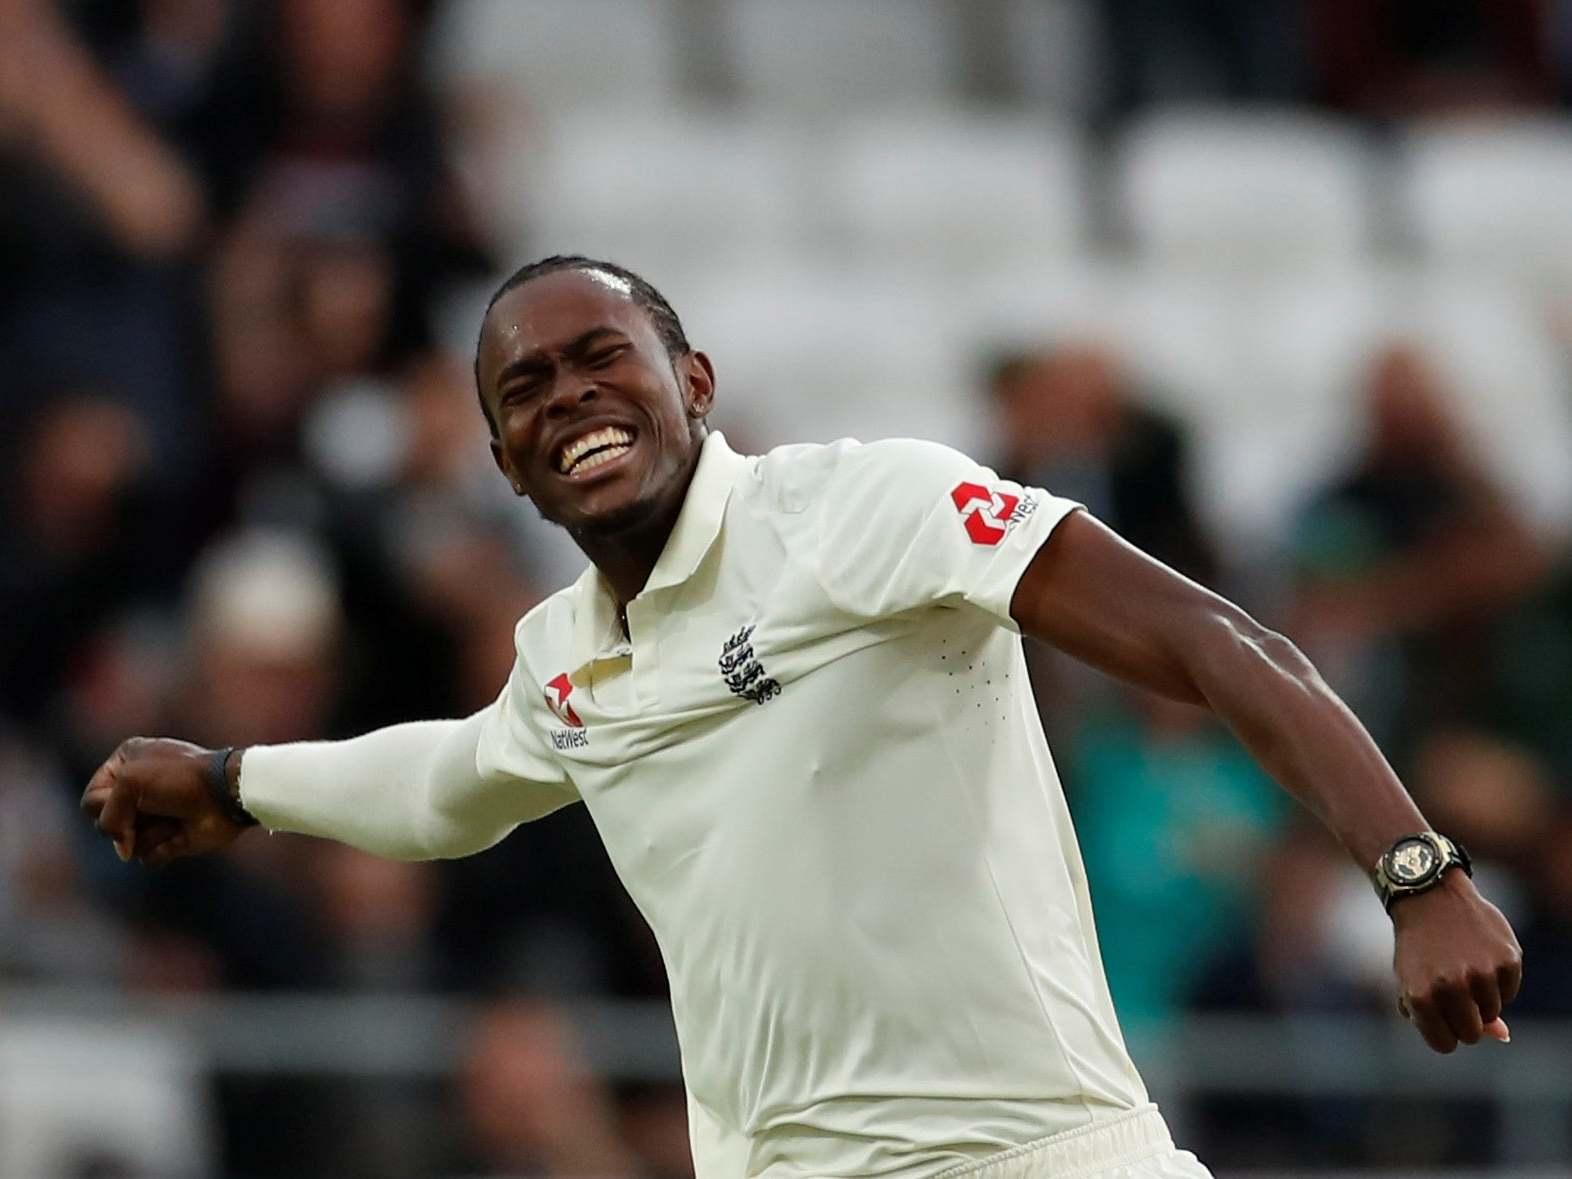 Ashes 2019: Jofra Archer embraces Headingley support after tearing apart Australian batting order in third Test